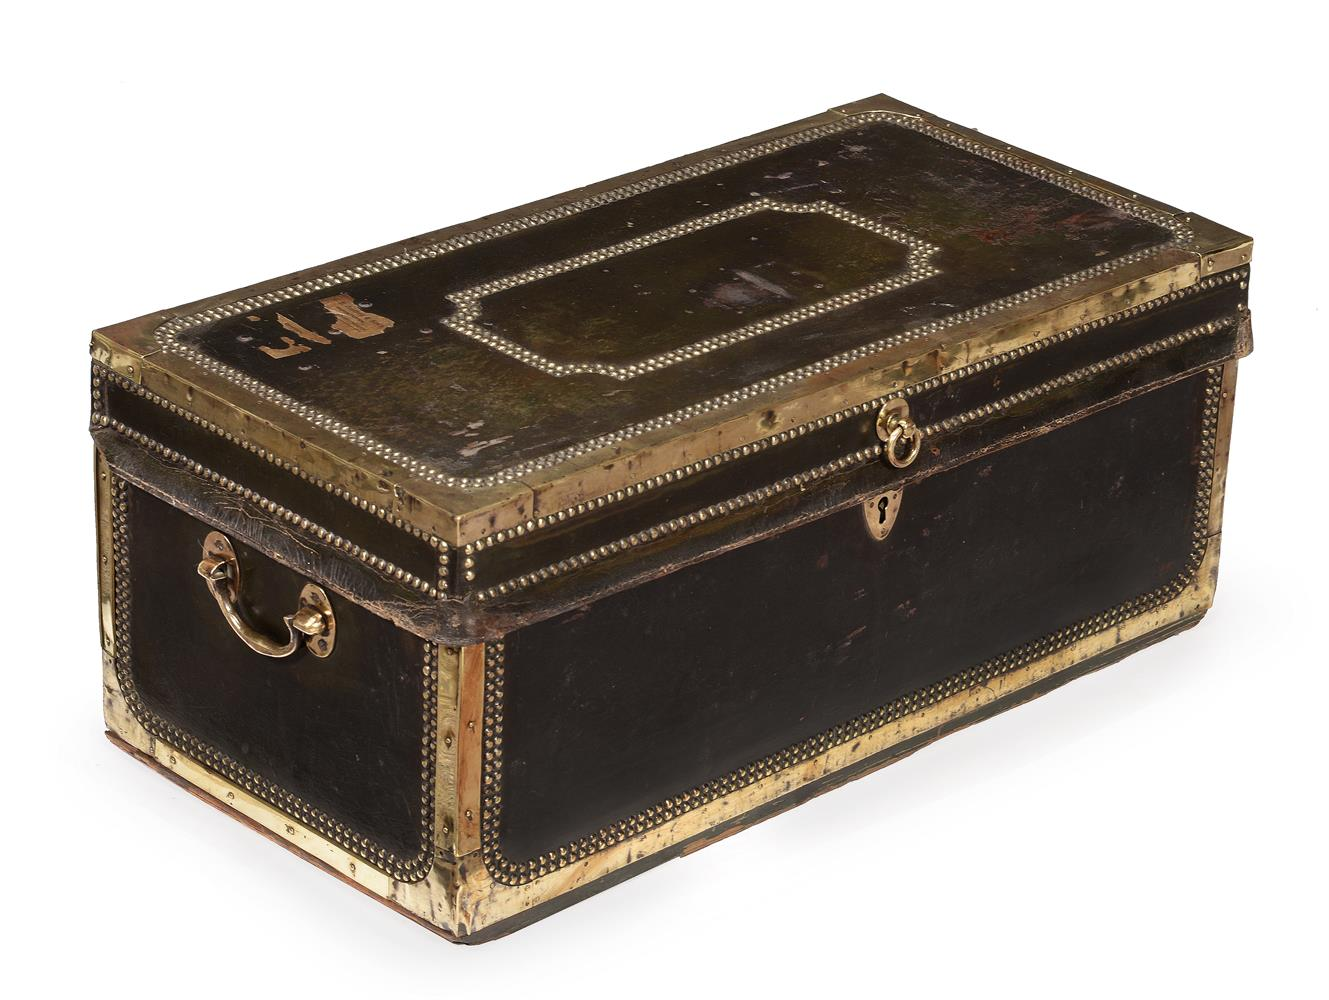 A studded leather and brass bound trunk